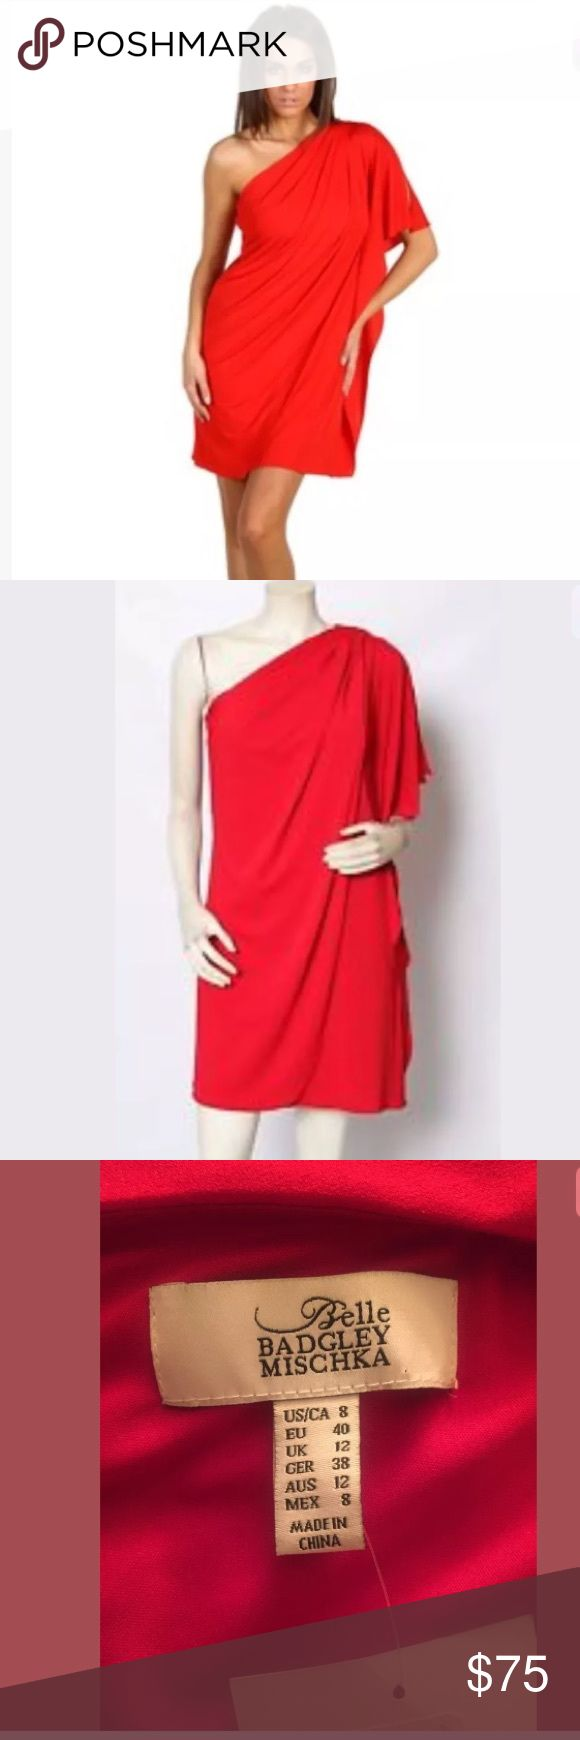 Belle BADGLEY MISCHKA Red One Shoulder Drape Dress Belle BADGLEY MISCHKA Red One Shoulder Drape Dress for sale! This dress is pre-owned, but barely worn, and new with tags! The original price was $149! Great condition! Badgley Mischka Dresses One Shoulder